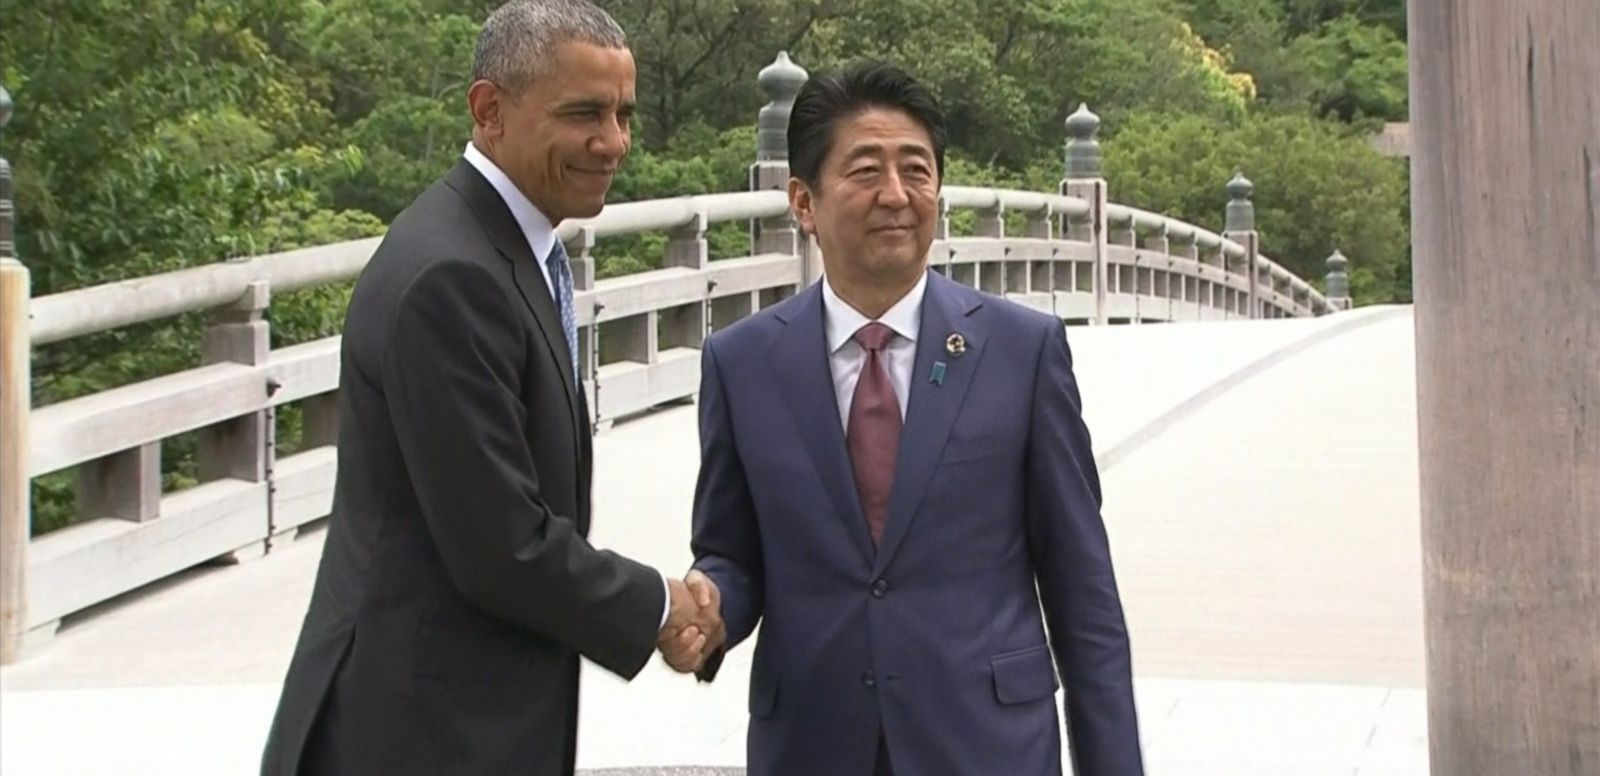 VIDEO: The president and prime minister strolled through the Ise-Jingu Shrine before meeting with other G7 leaders. The world leaders used shovels to plant trees on the grounds of the holy site.